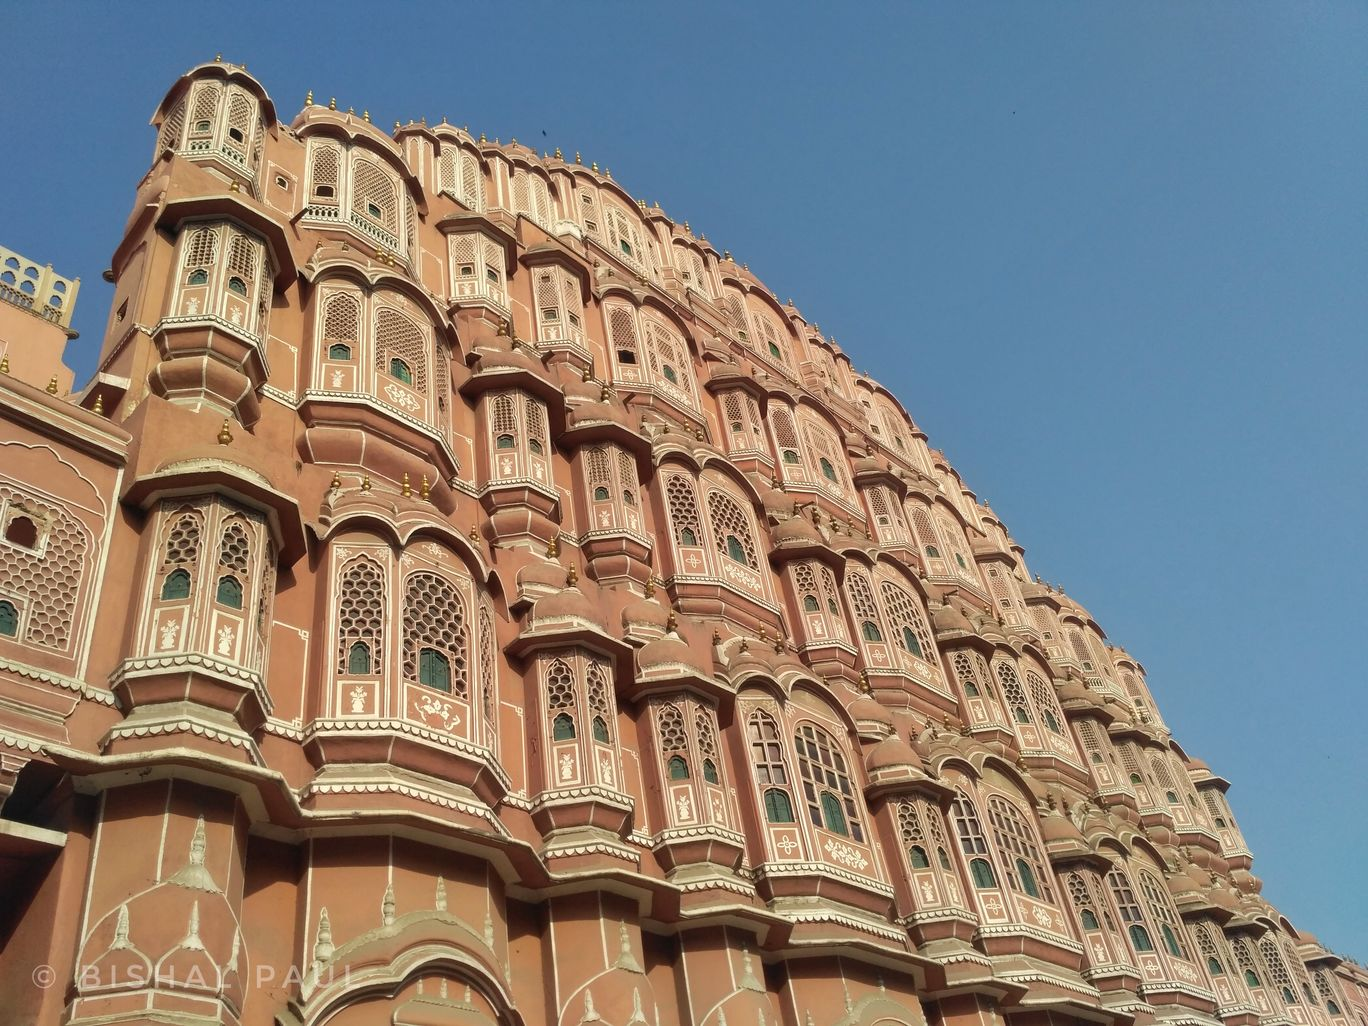 Photo of Jaipur By Bishal Paul